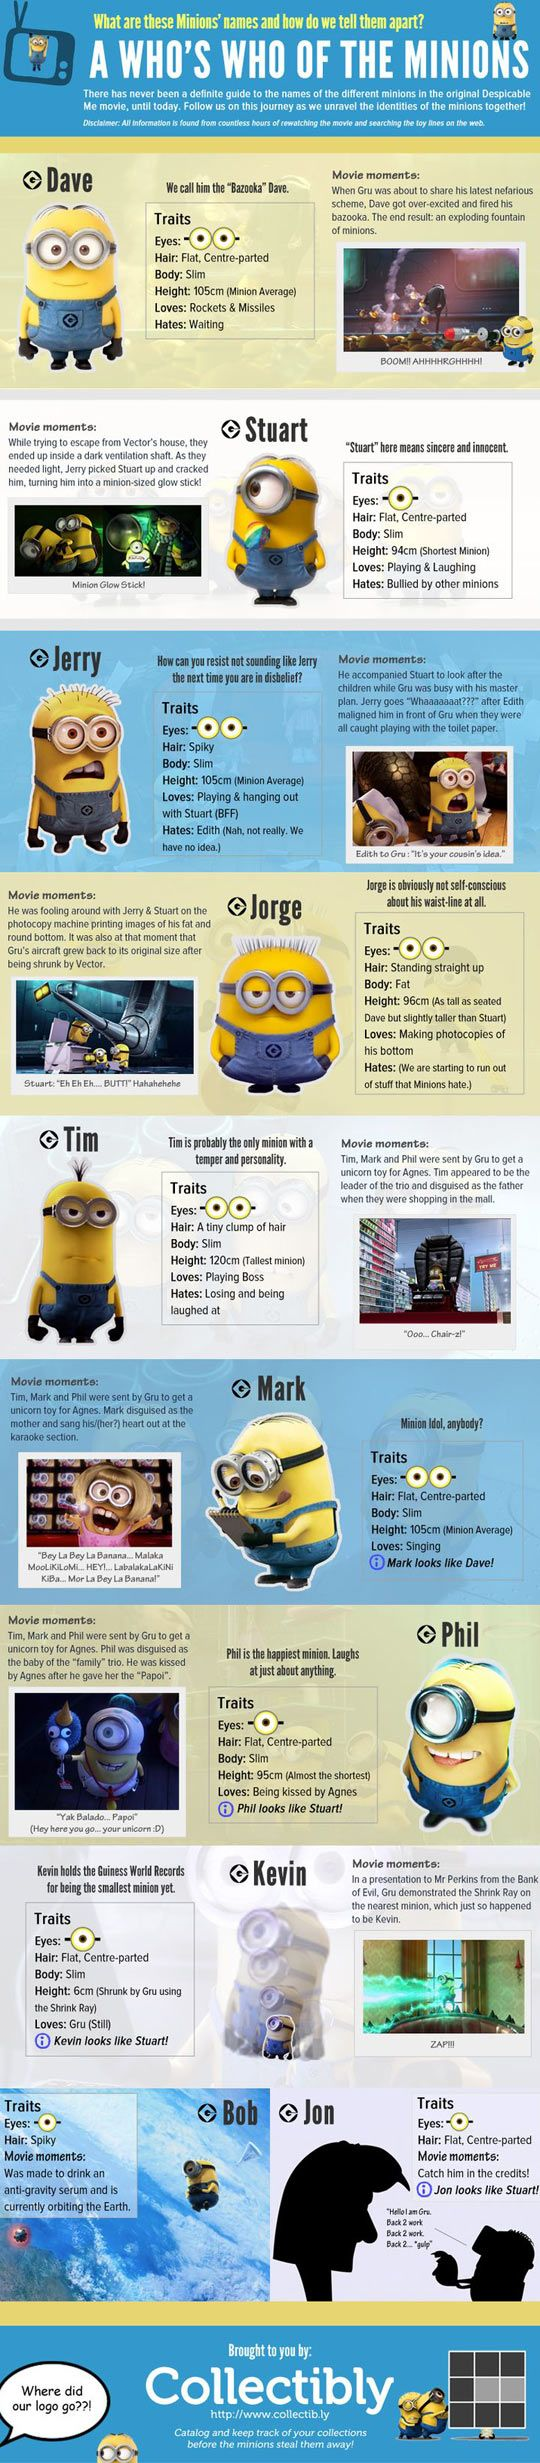 Who's who of the Minions.